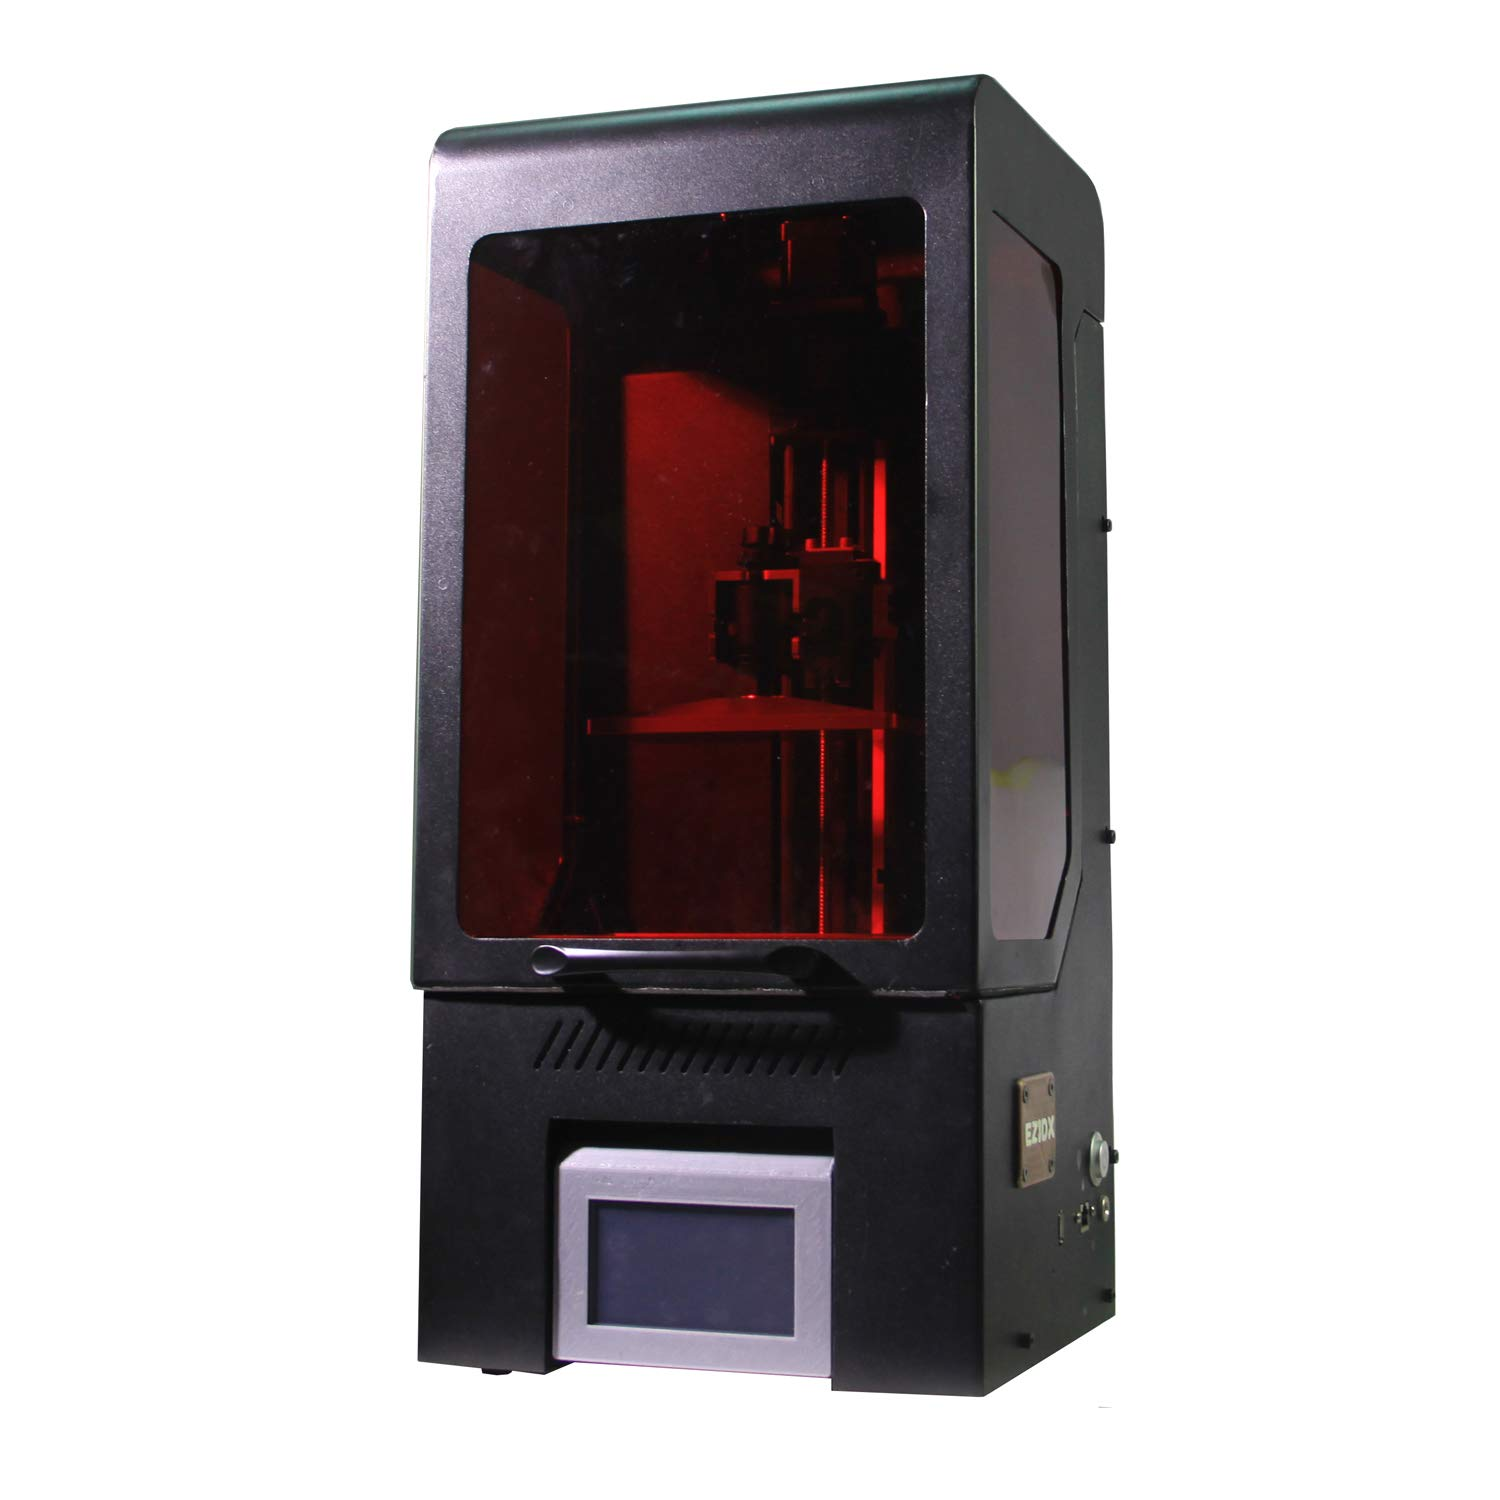 61XIdlkkelL. SL1500 9 - XINSHAN CubeX P6 SLA UV Resin LCD 3D Printer